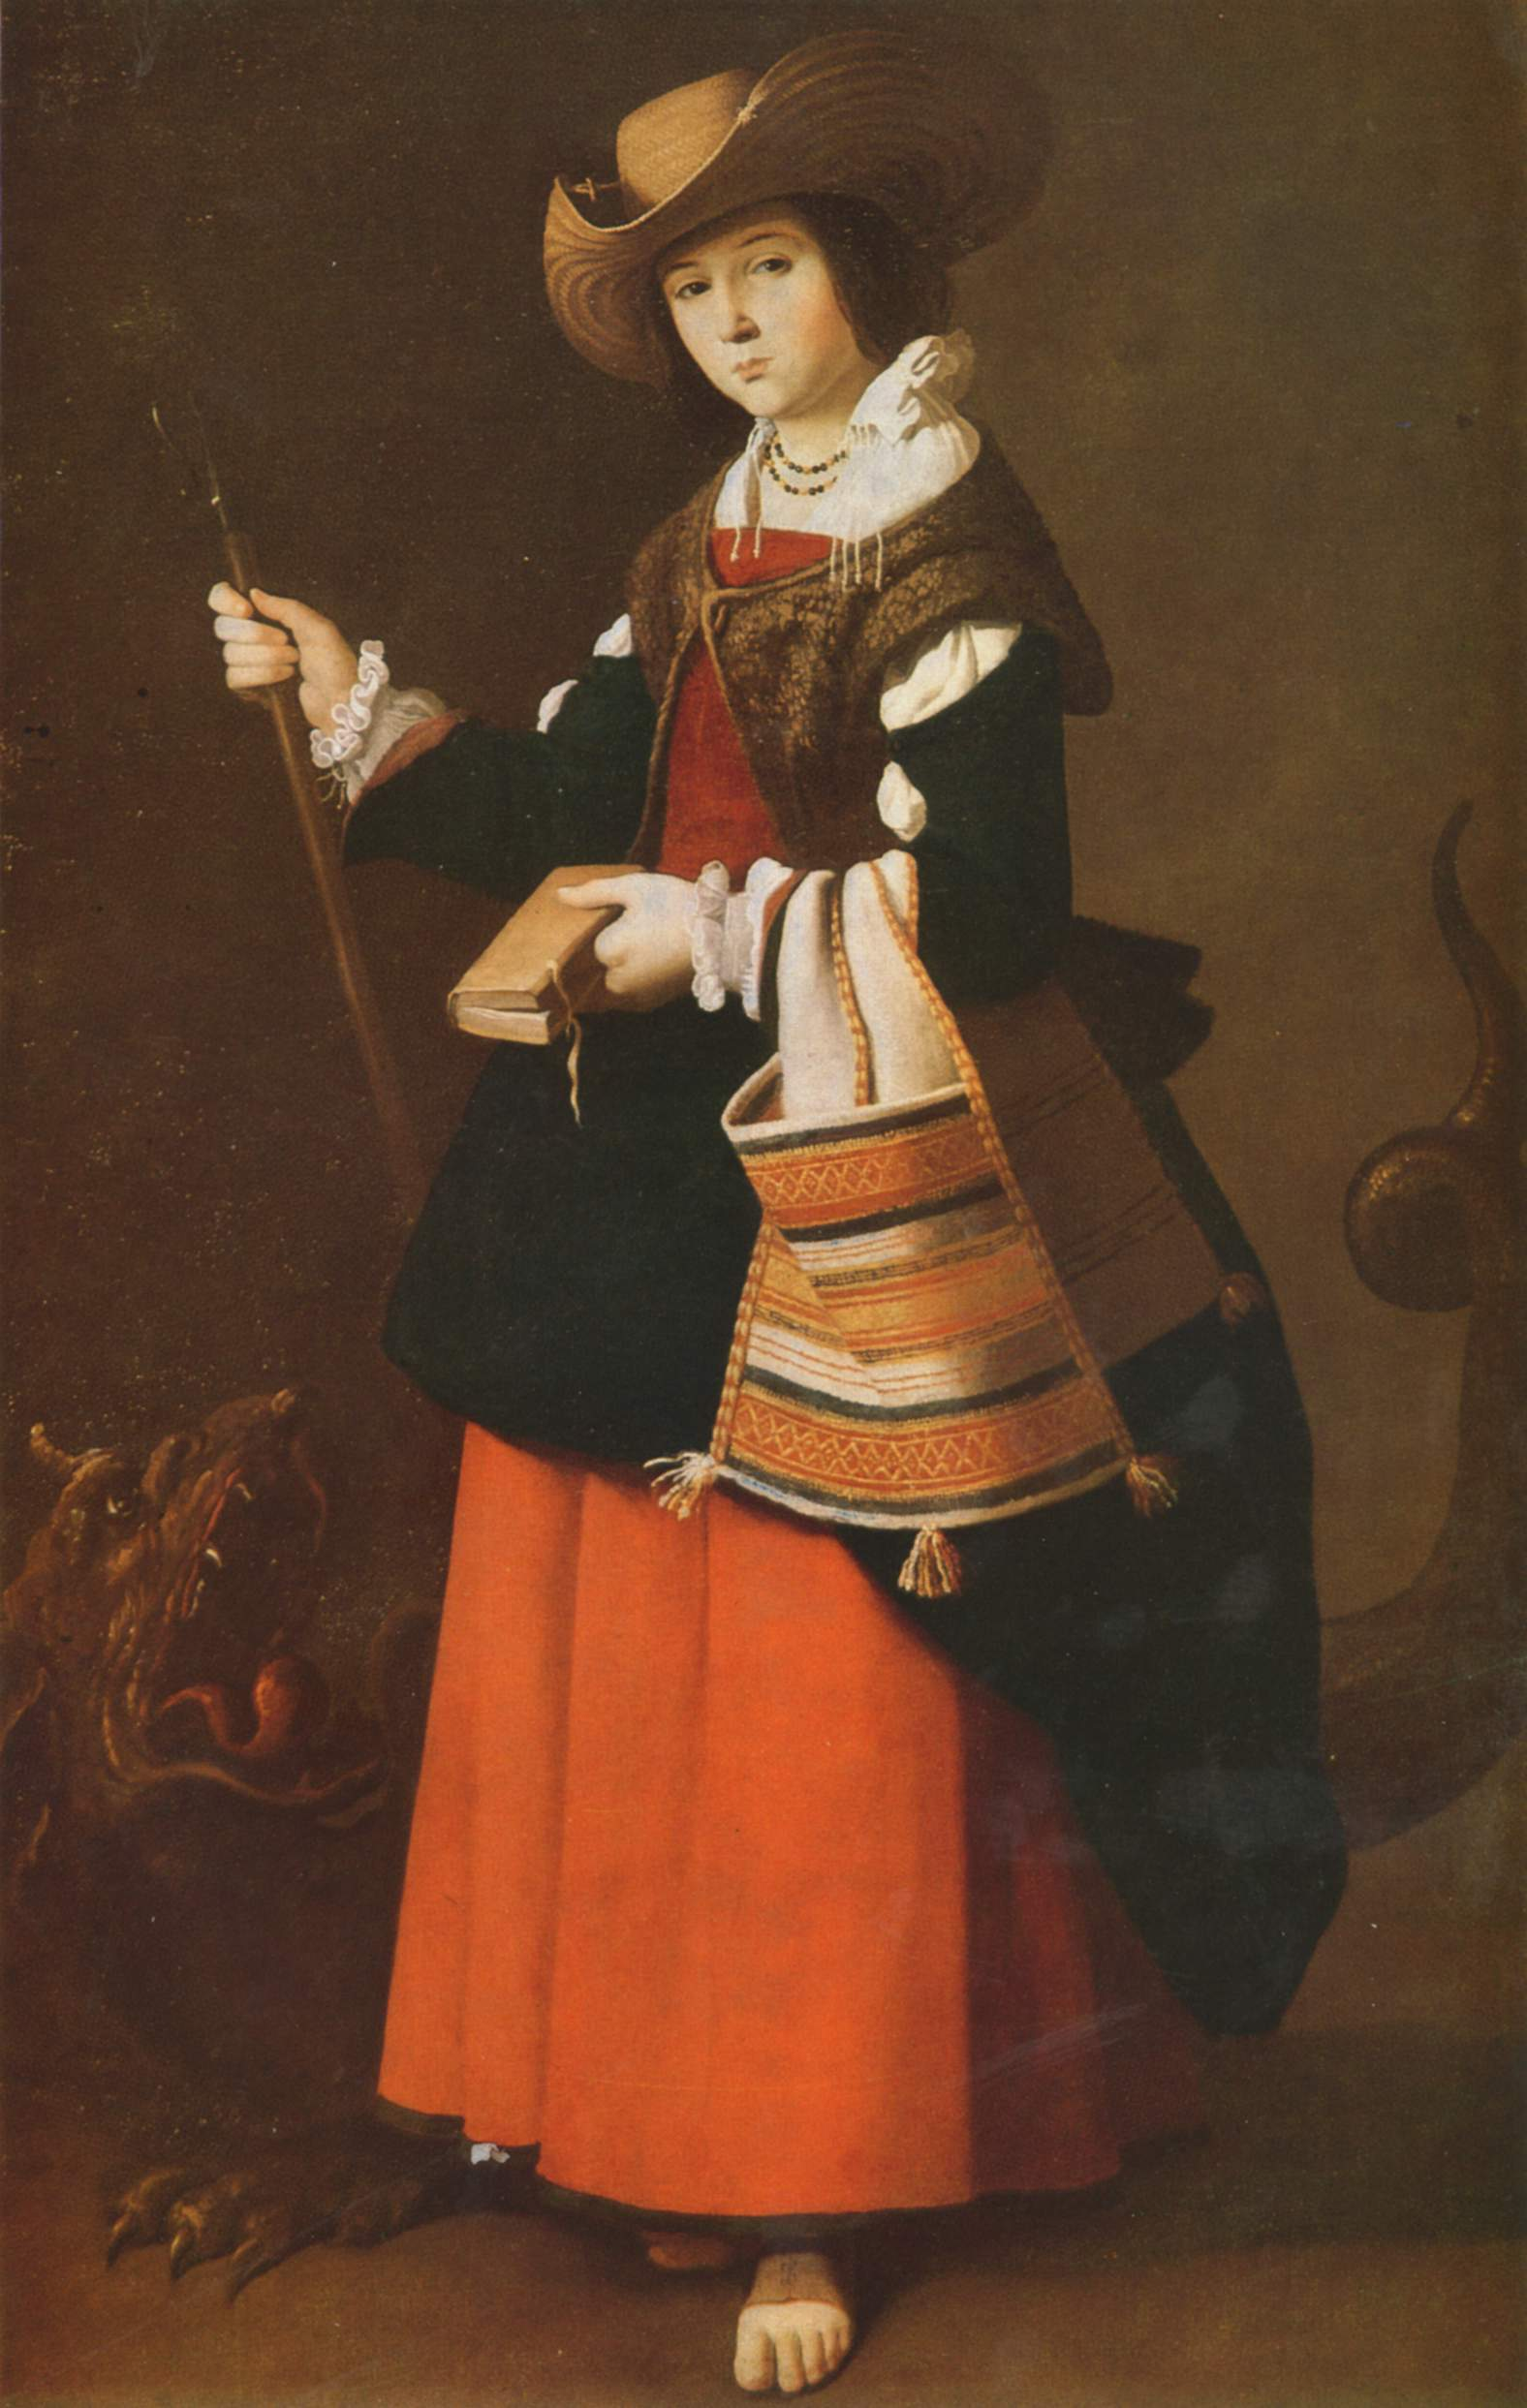 1631-zurbaran-saint-margaret-dressed-as-a-shepherdess.jpg